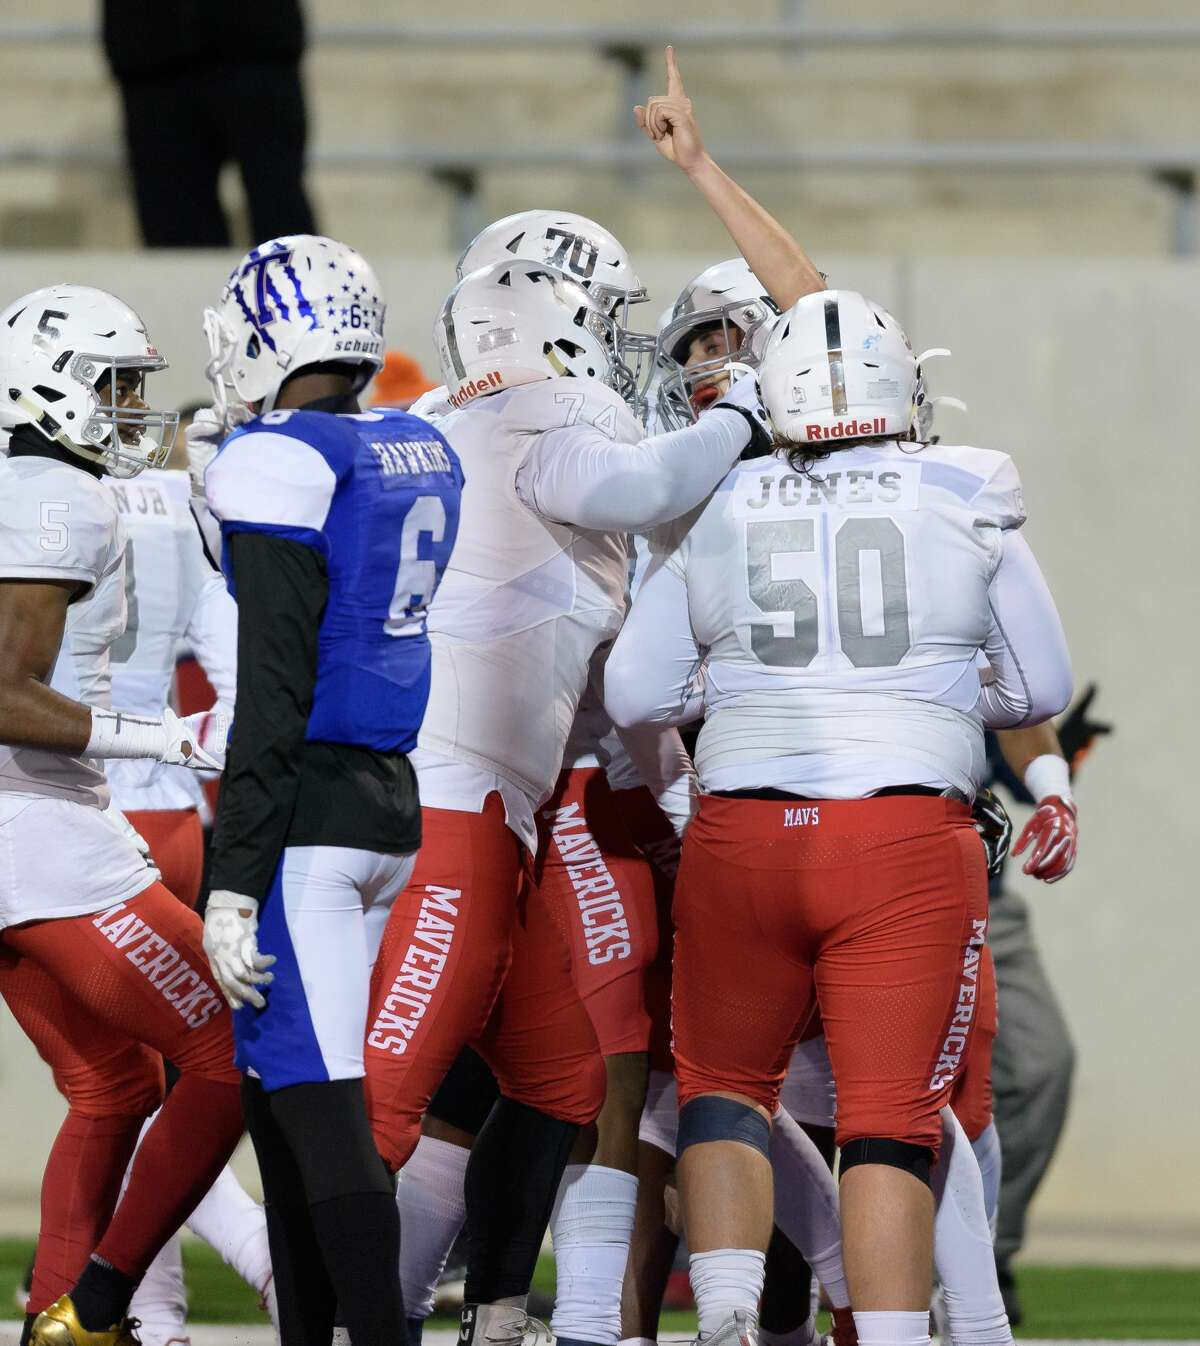 Kason Martin (12) of the Manvel Mavericks celebrates his touchdown in the second half with Lance Jones (50), Steven Shaw (70), and Jalen Momerelle (74) in a game against the Temple Wildcats in a high school football game on Friday, December 8, 2017 at Blackshear Field at Prairie View A&M University.